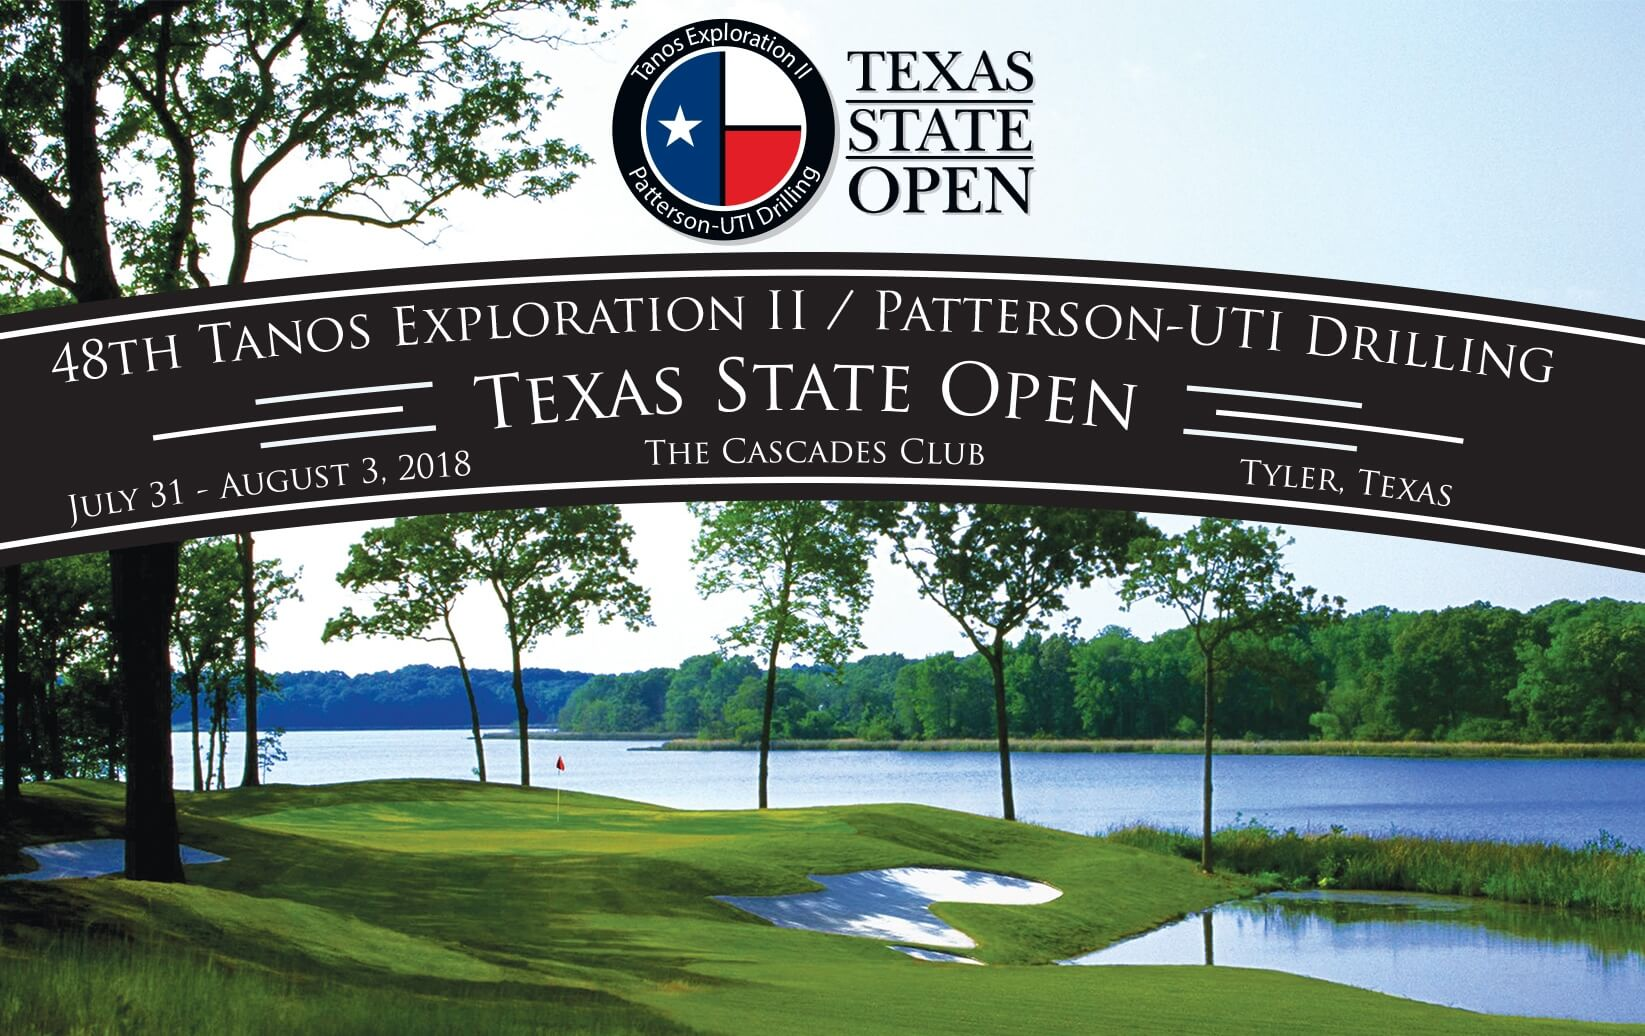 48th Tanos Exploration II / Patterson-UTI Drilling Texas State Open Second Chance Qualifying Entry Deadline Rapidly Approaching